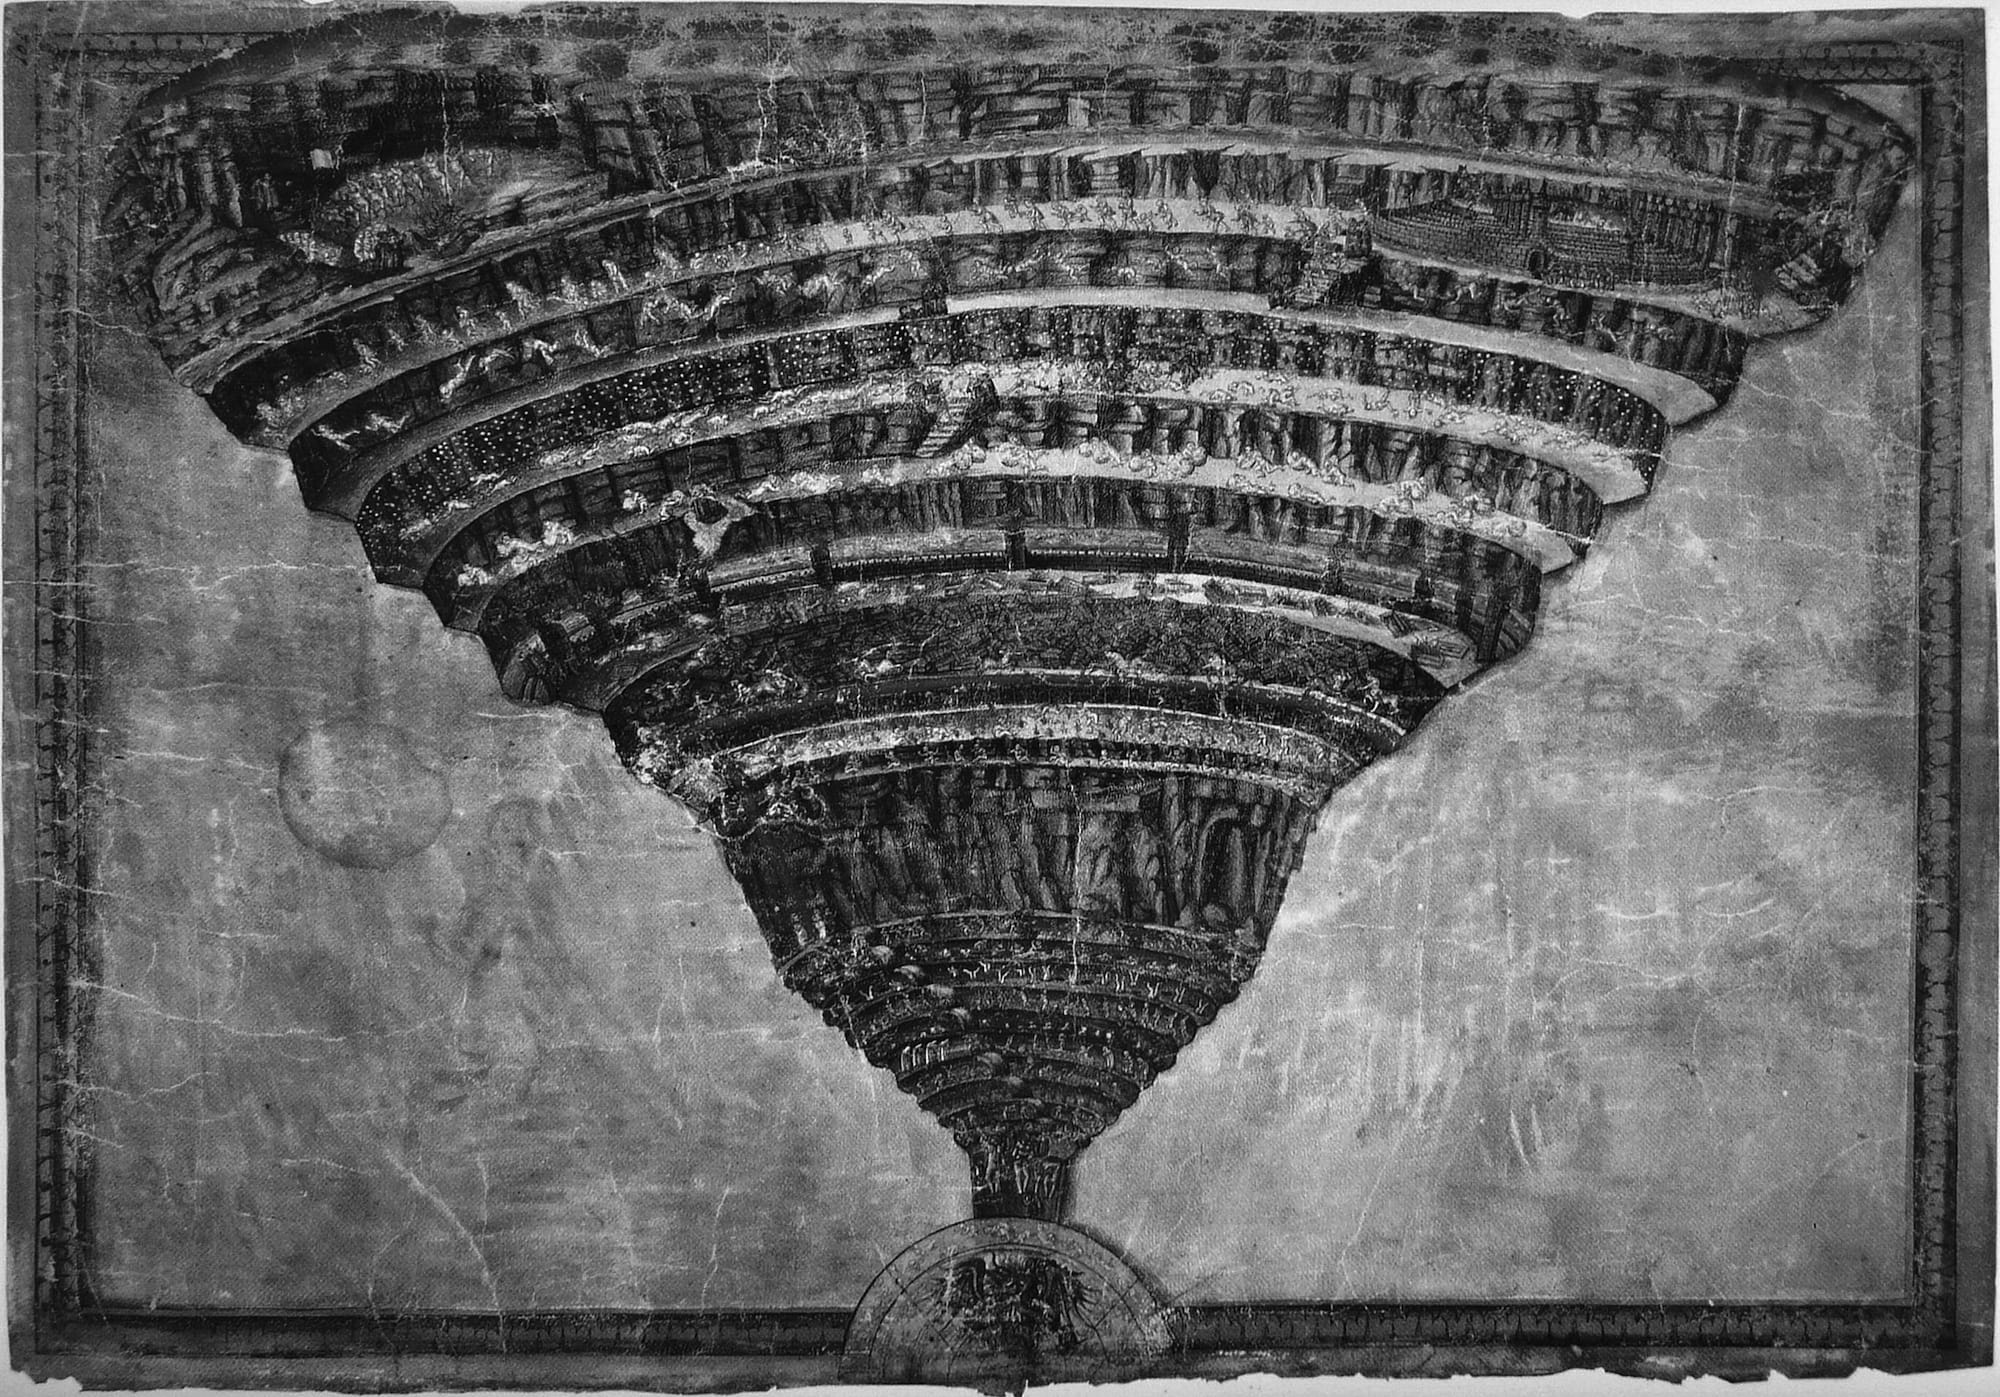 Sandro Botticelli, _Map of Hell._ Pen and brush on vellum (32 × 47 cm), c. 1485. Courtesy Vatican Library, Rome. Creative Commons